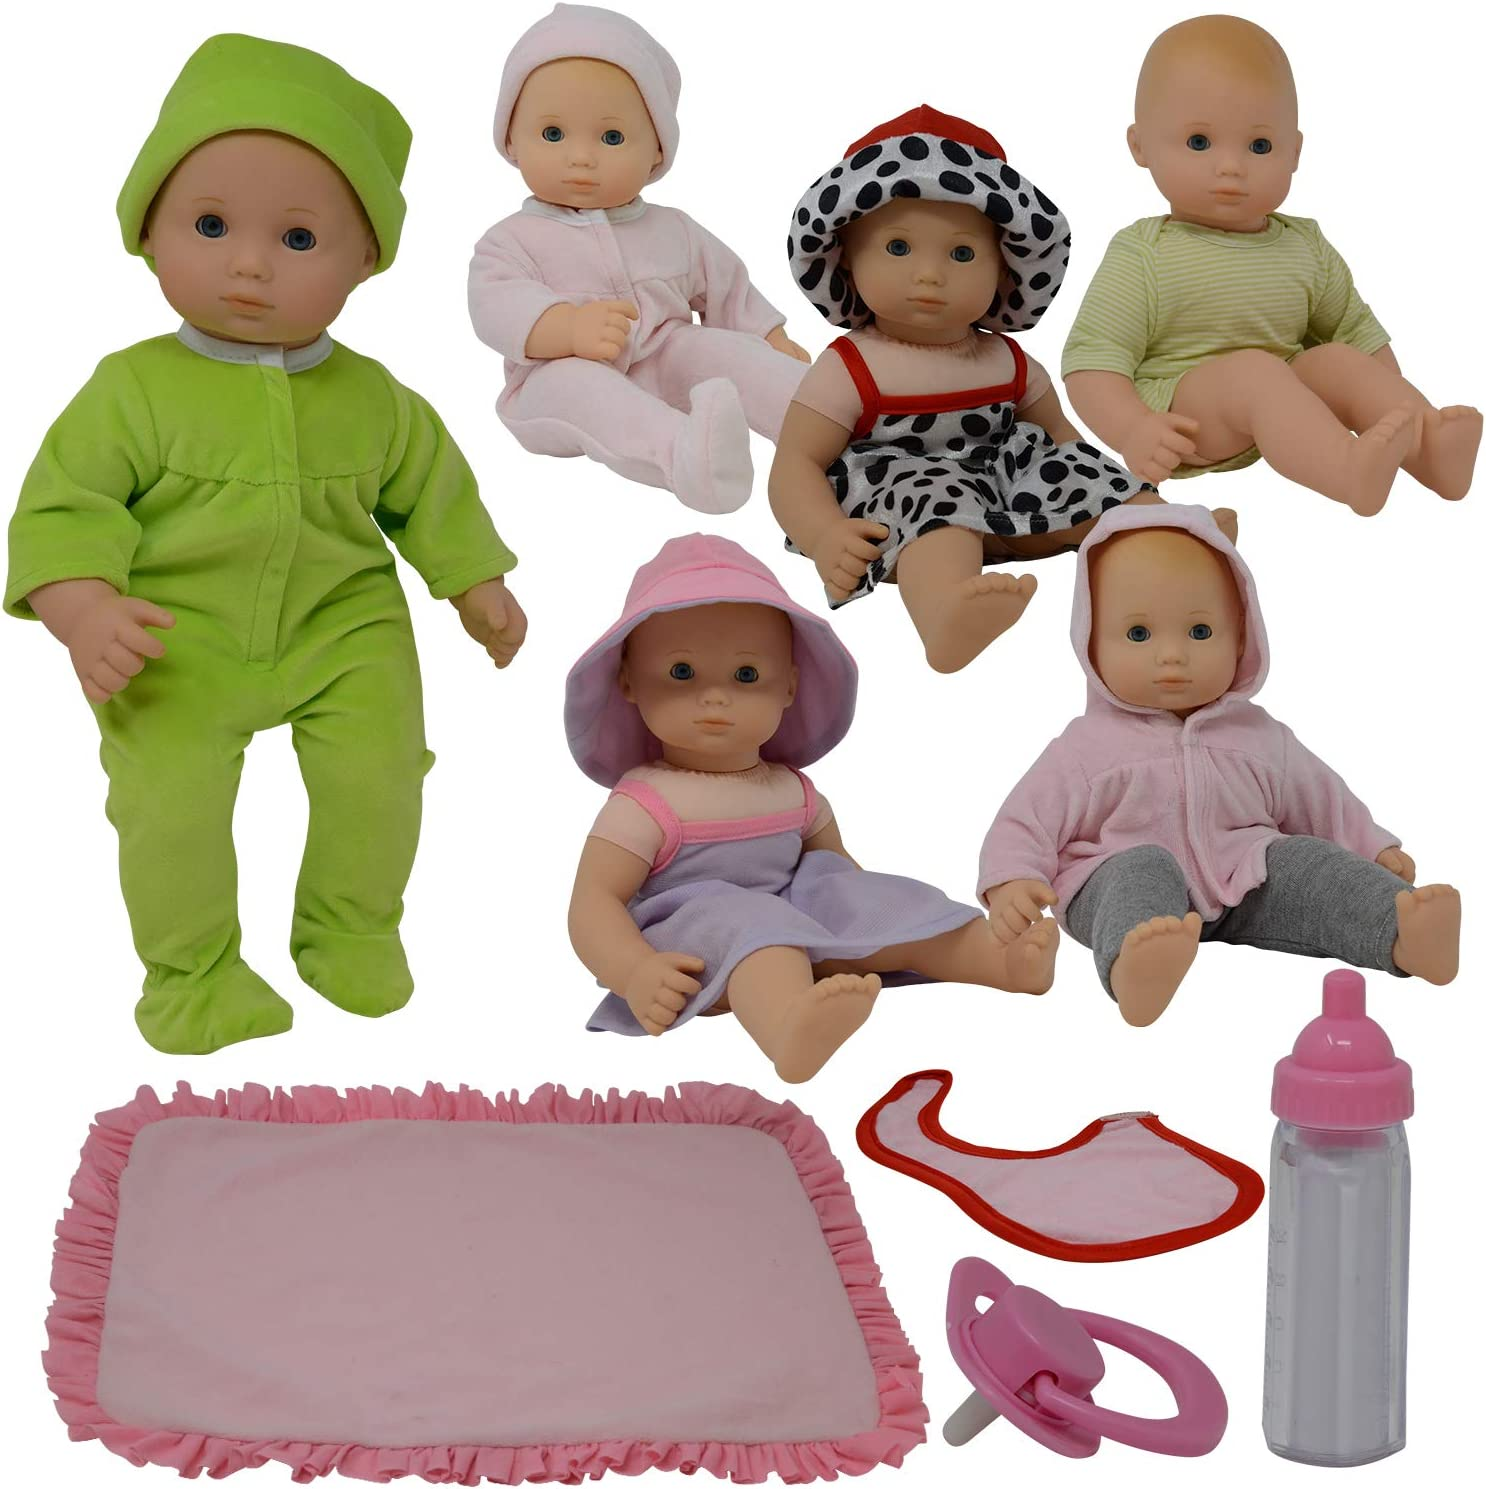 Baby Doll Clothes New Born Baby Doll Outfits for 14 15 and 16 inch Dolls Includes Doll Accessories Bottle Blanket and Sets of Clothing Pacifier